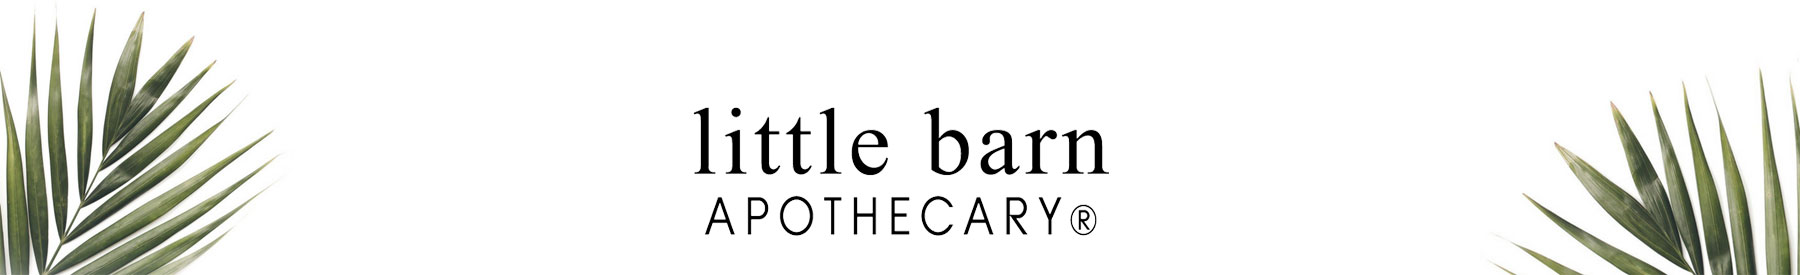 Image result for little barn apothecary banner